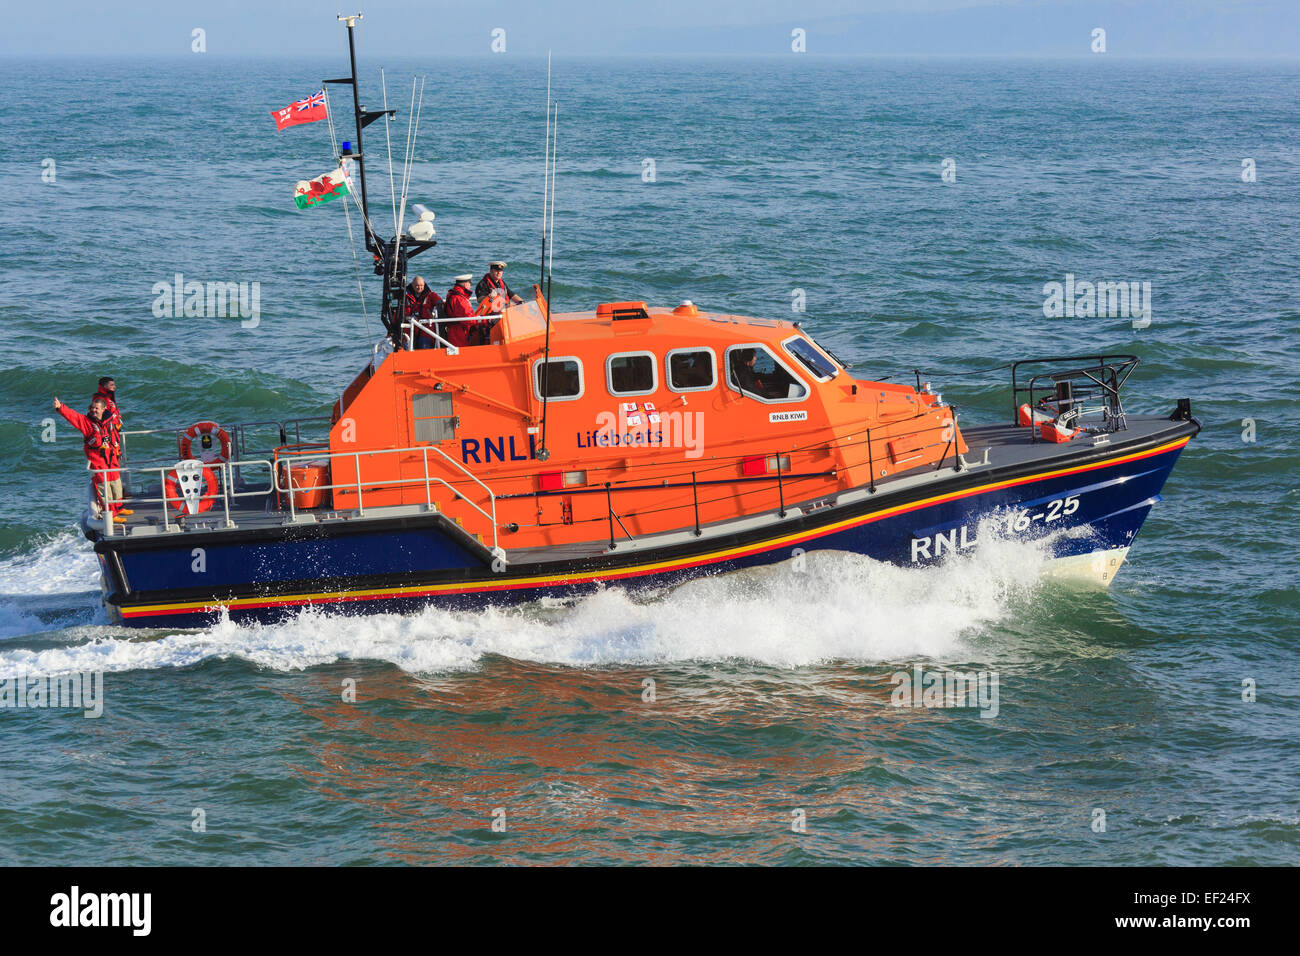 "RNLI lifeboat crew at sea in new Tamar class vessel ""Kiwi"" in Moelfre, Isle of Anglesey, North Wales, UK, Britain Stock Photo"